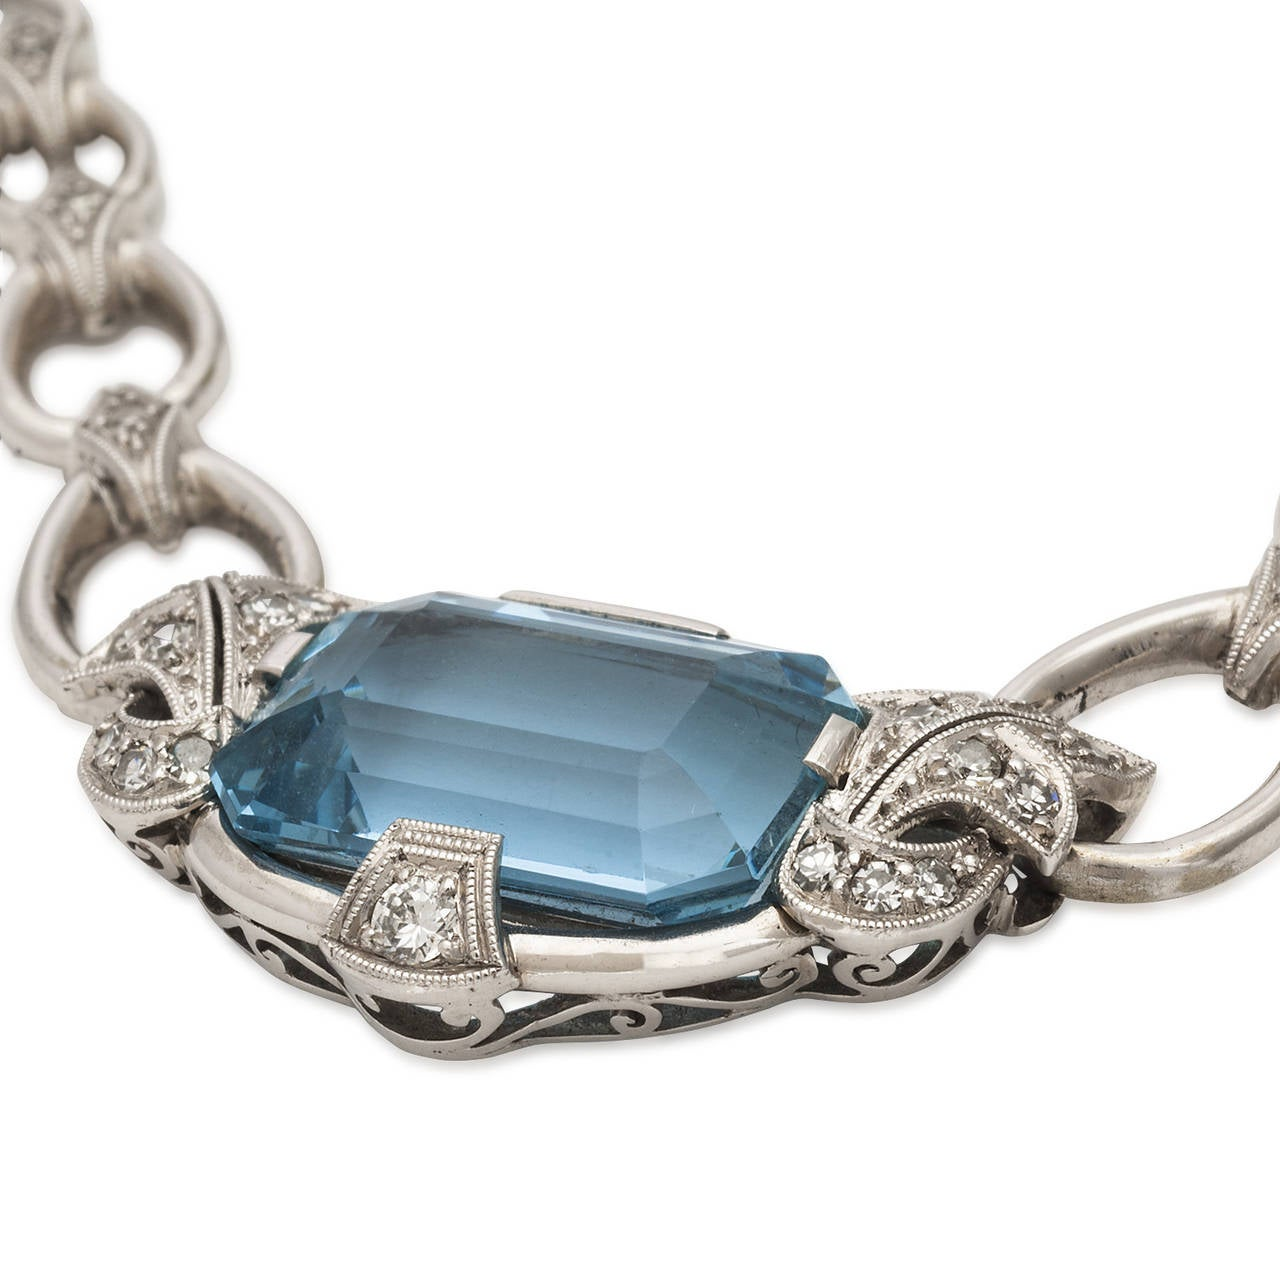 The aquamarine 5.5ct TW in this necklace has a brilliant blue color and clarity that is unusual to find in such a large stone. The color is accentuated by the 23 diamonds TW of 0.2ct set in 18k white gold. The style is definitely 1960's